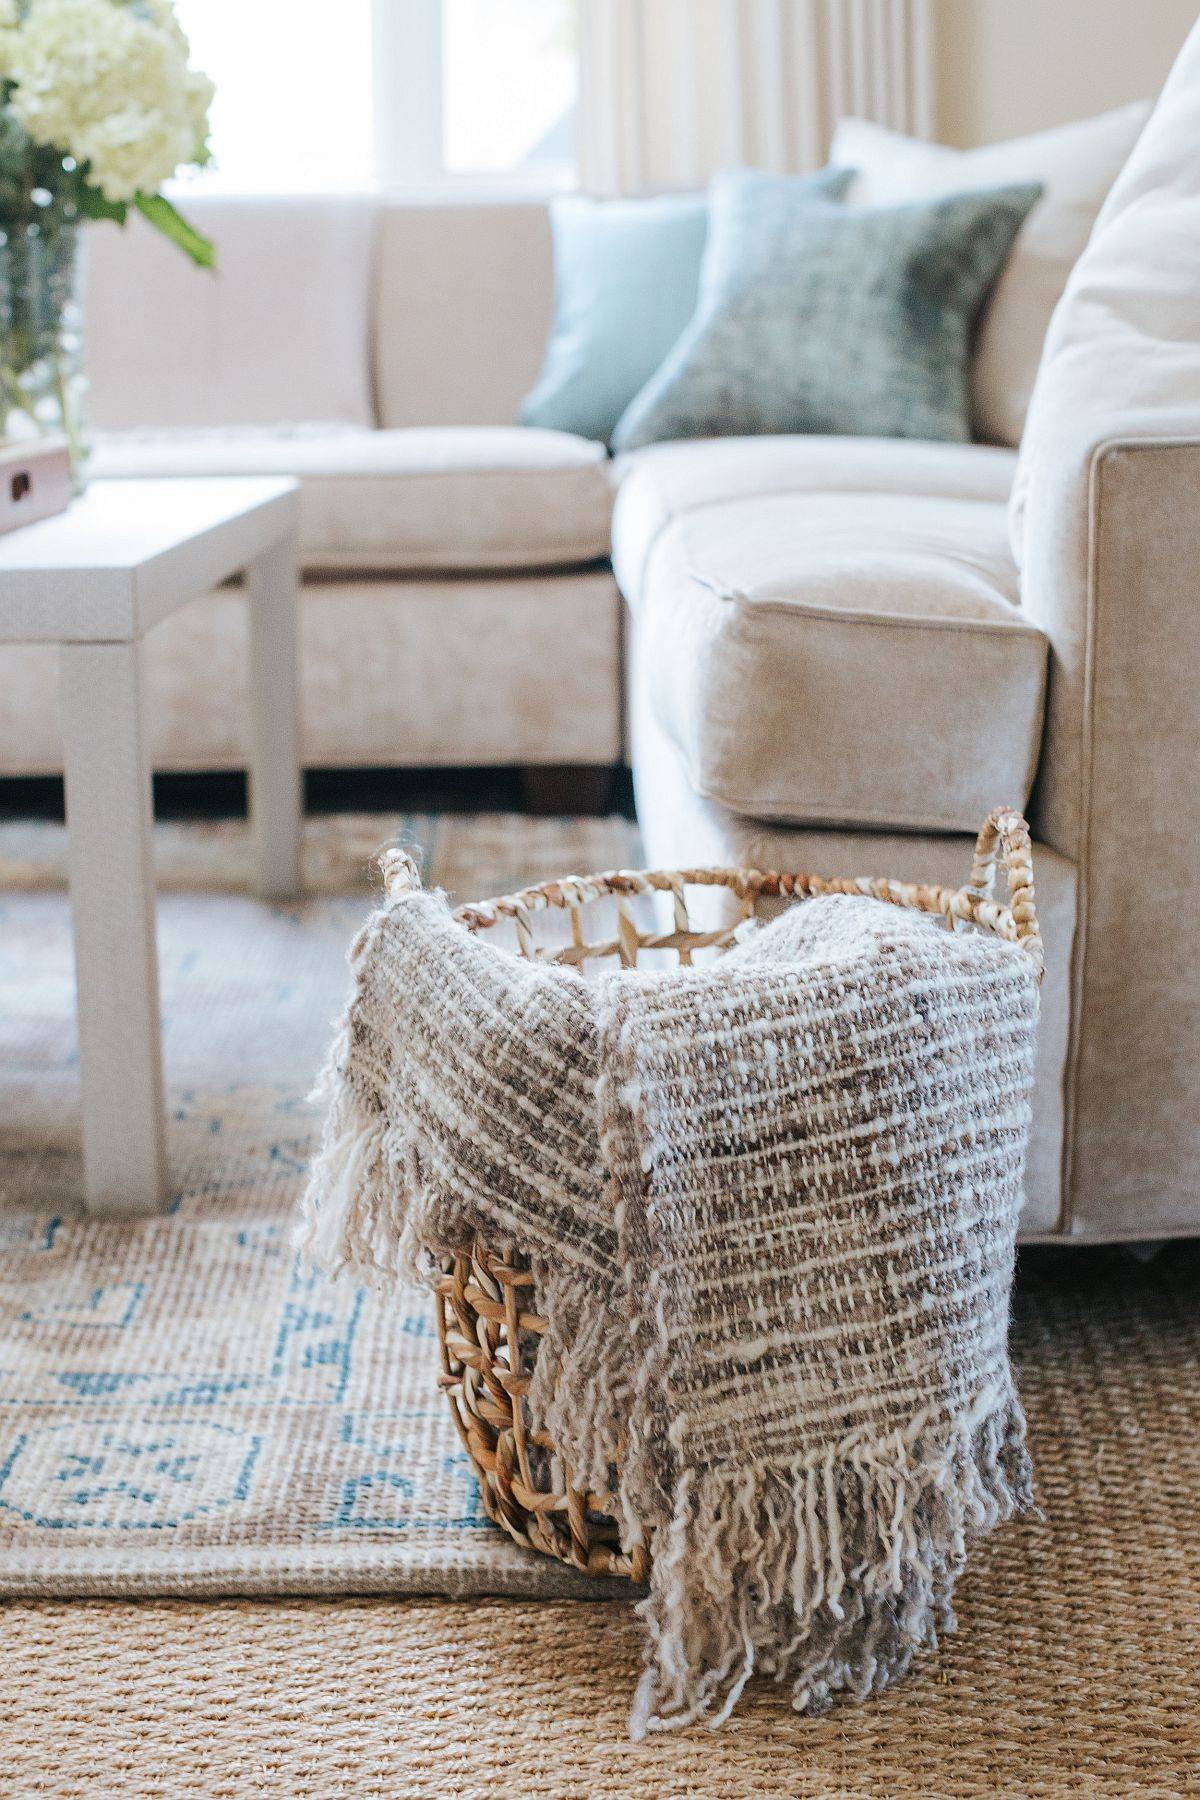 Choosing-the-right-rug-and-decorating-pieces-for-the-modern-beach-style-living-room-59079